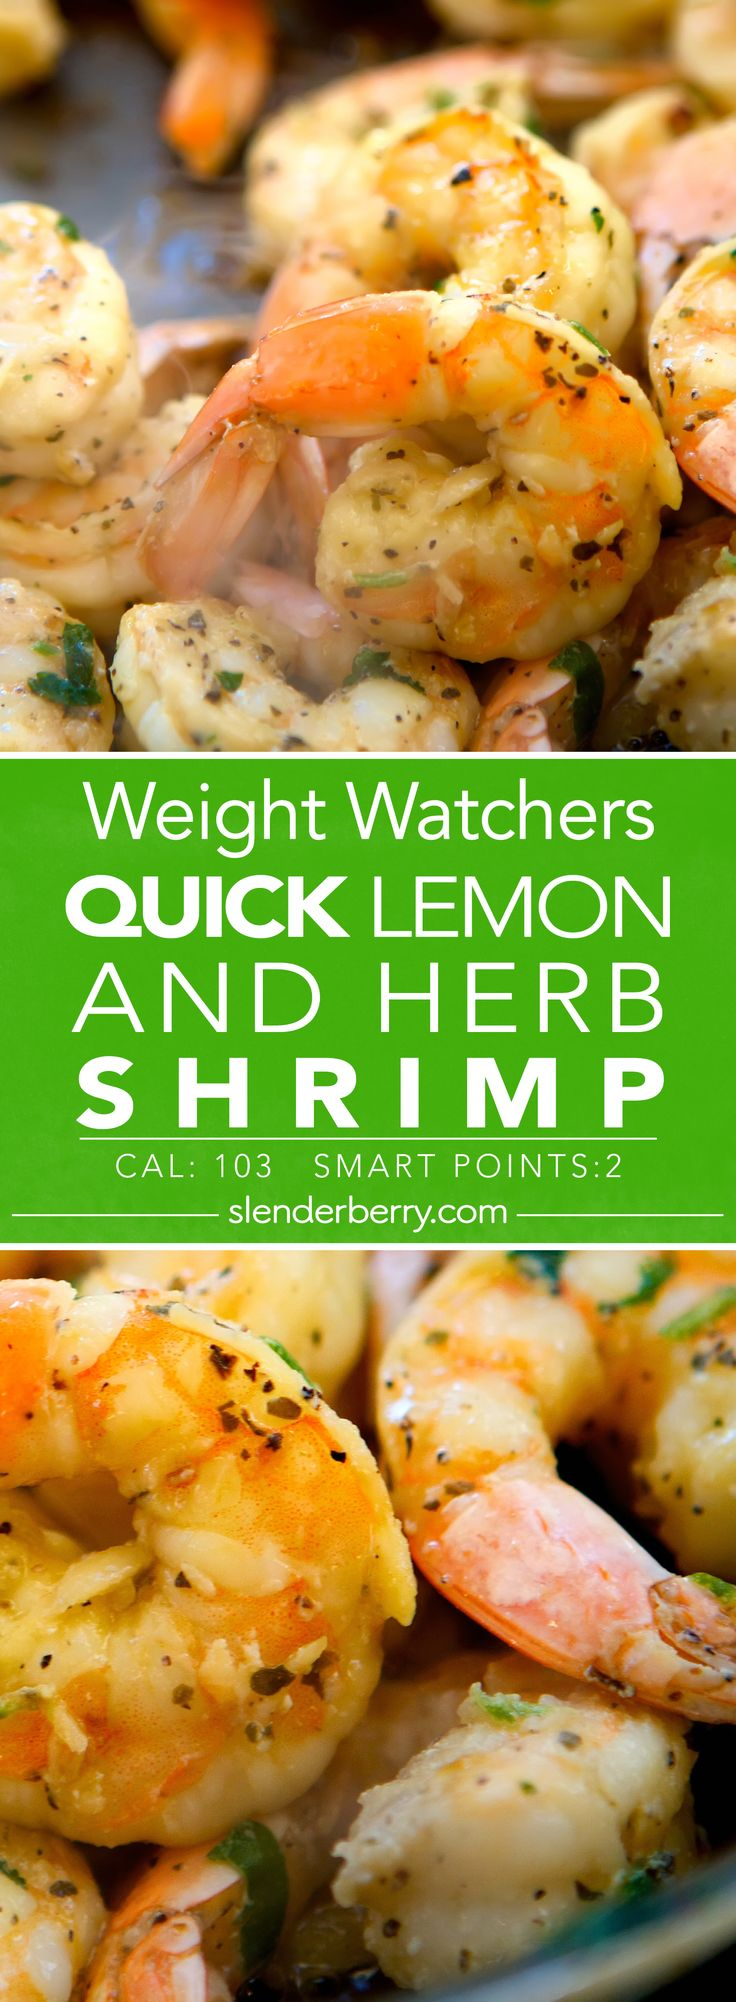 Weight Watchers Quick Lemon and Herb Shrimp Recipe - 2 Smart Points and 103 Calories